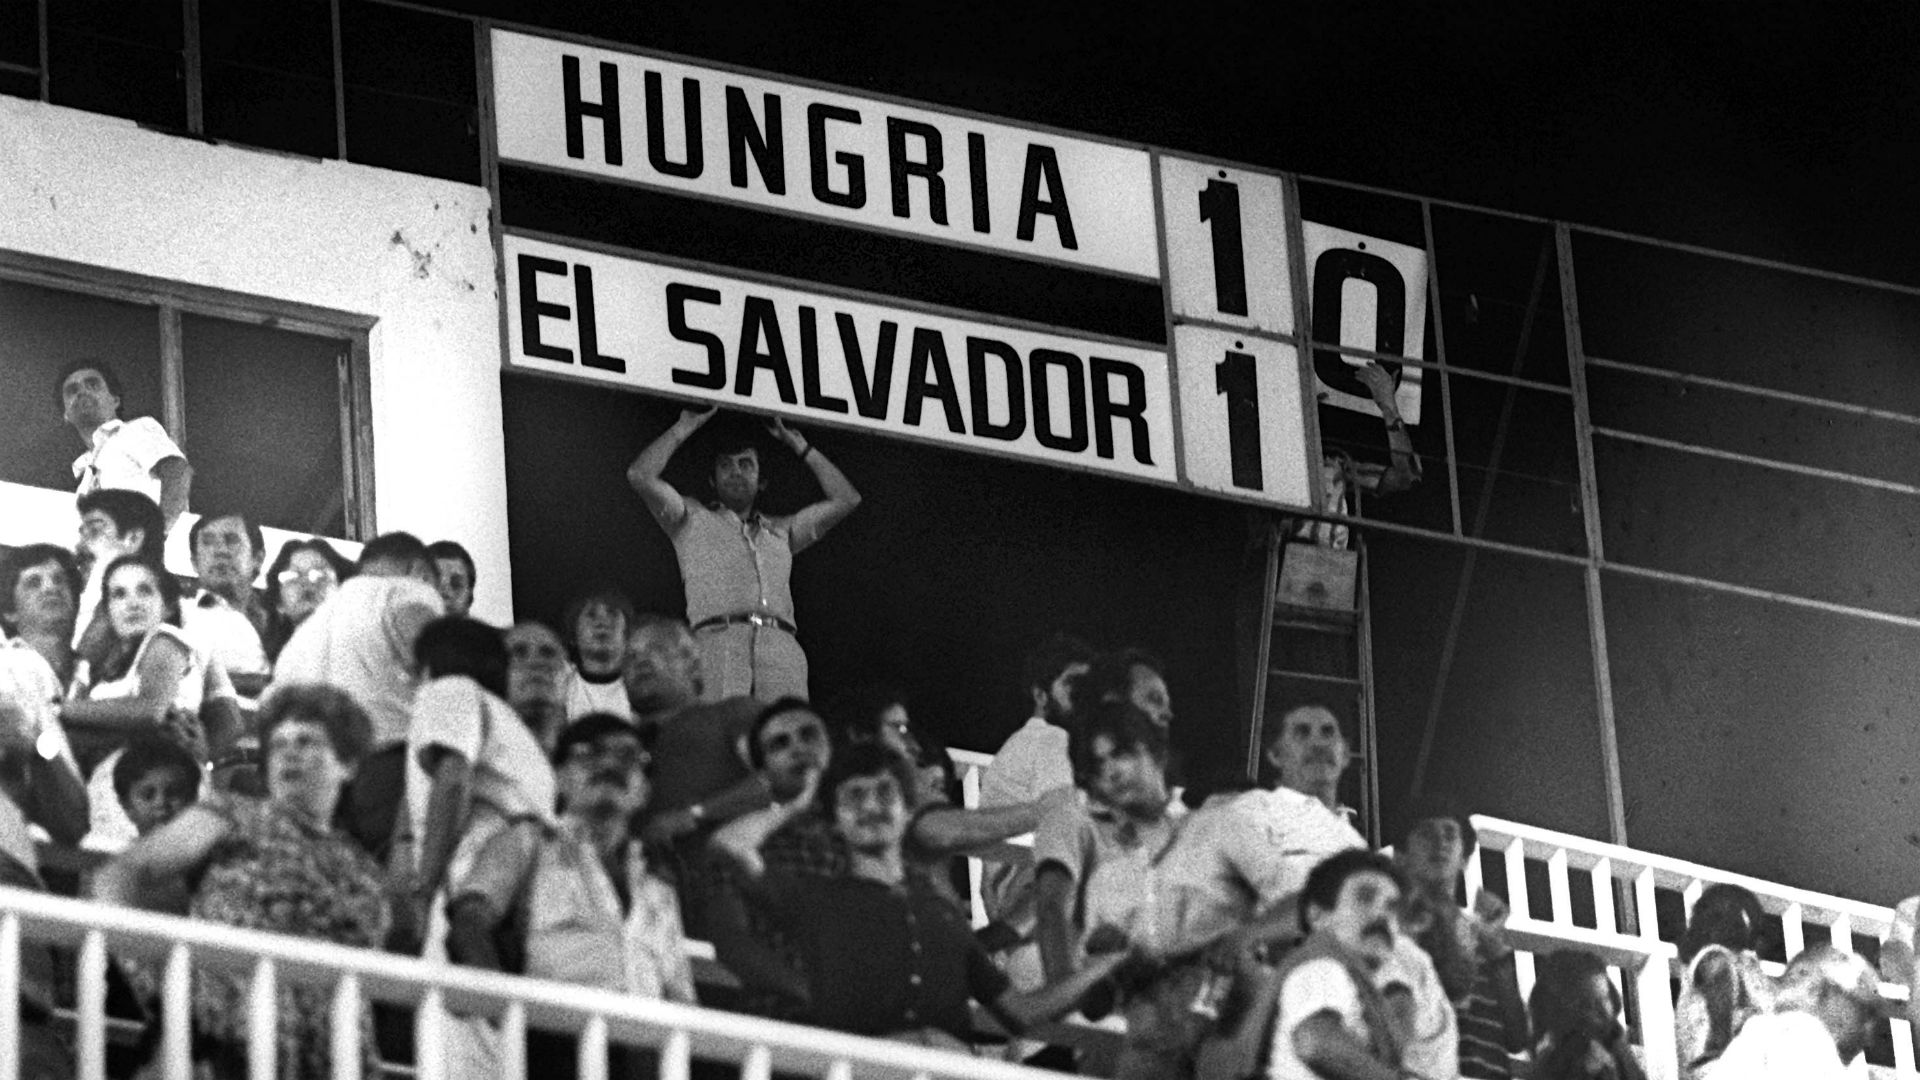 Hungary El Salvador FIFA World Cup 1982